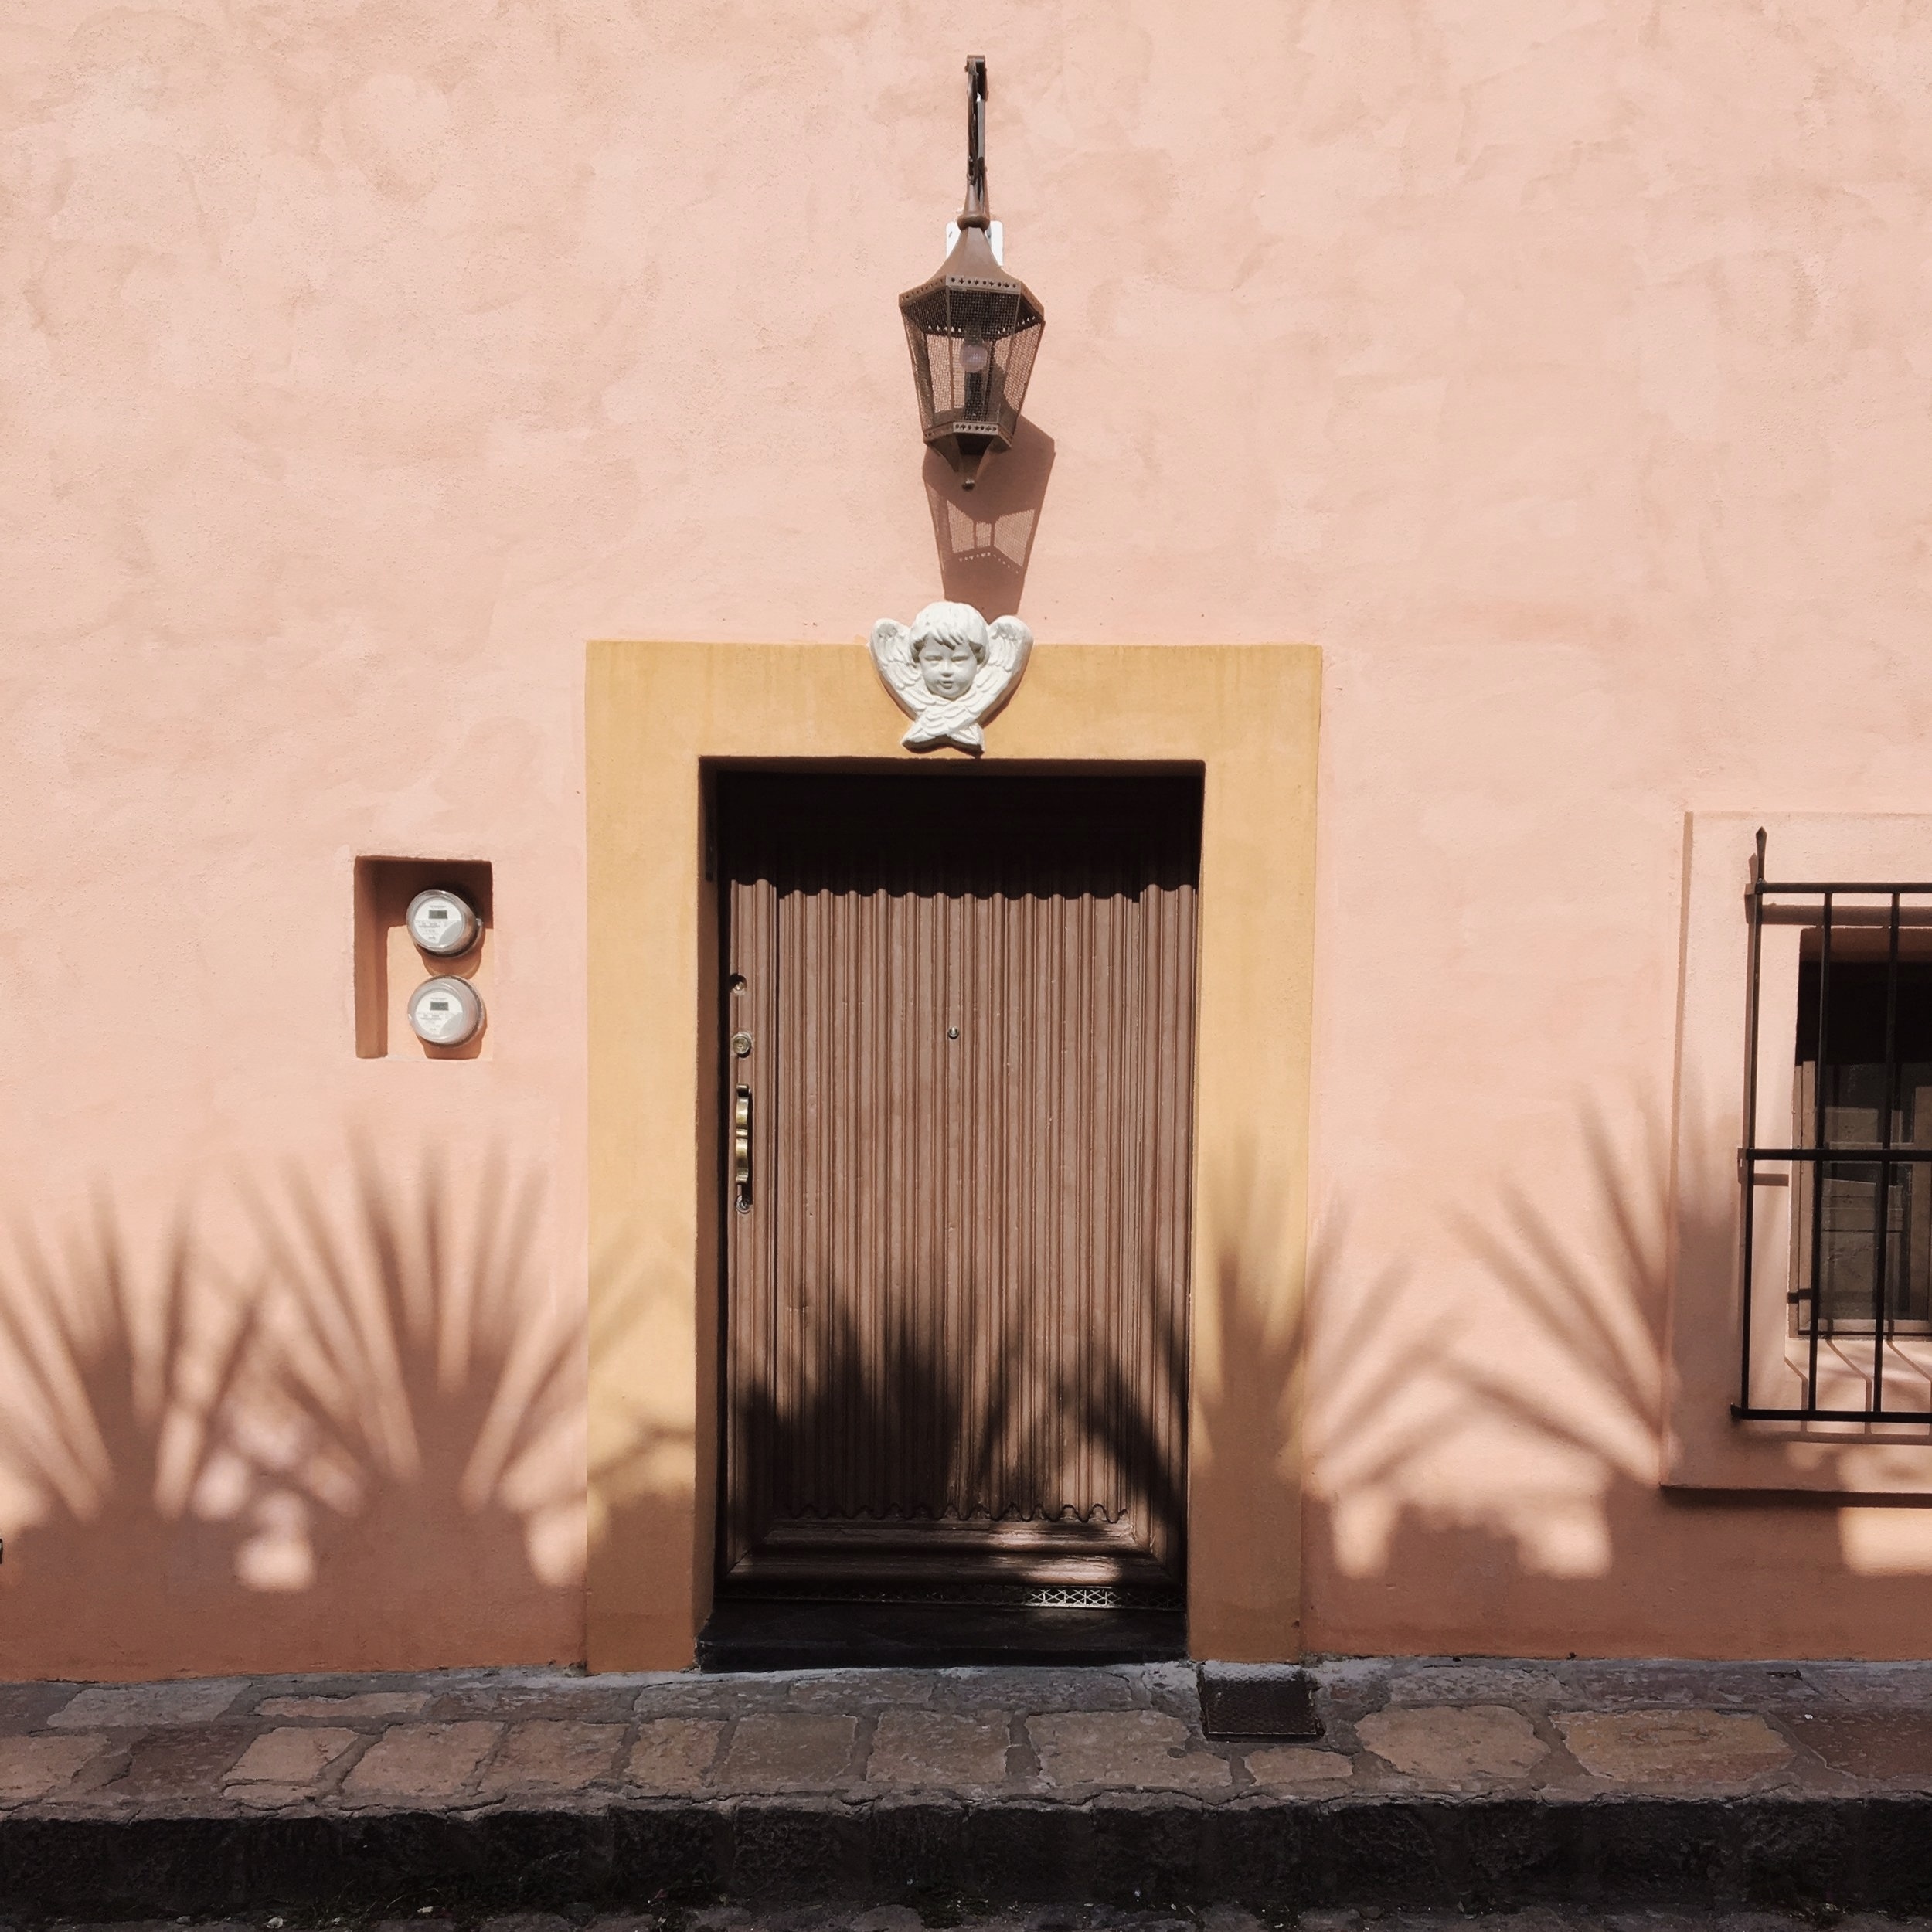 SAN MIGUEL DE ALLENDE, MEXICO - COMING IN 2020 - - FULL TRIP DETAILS COMING SOONSIGN UP TO BE NOTIFIED OF TRIP LAUNCH